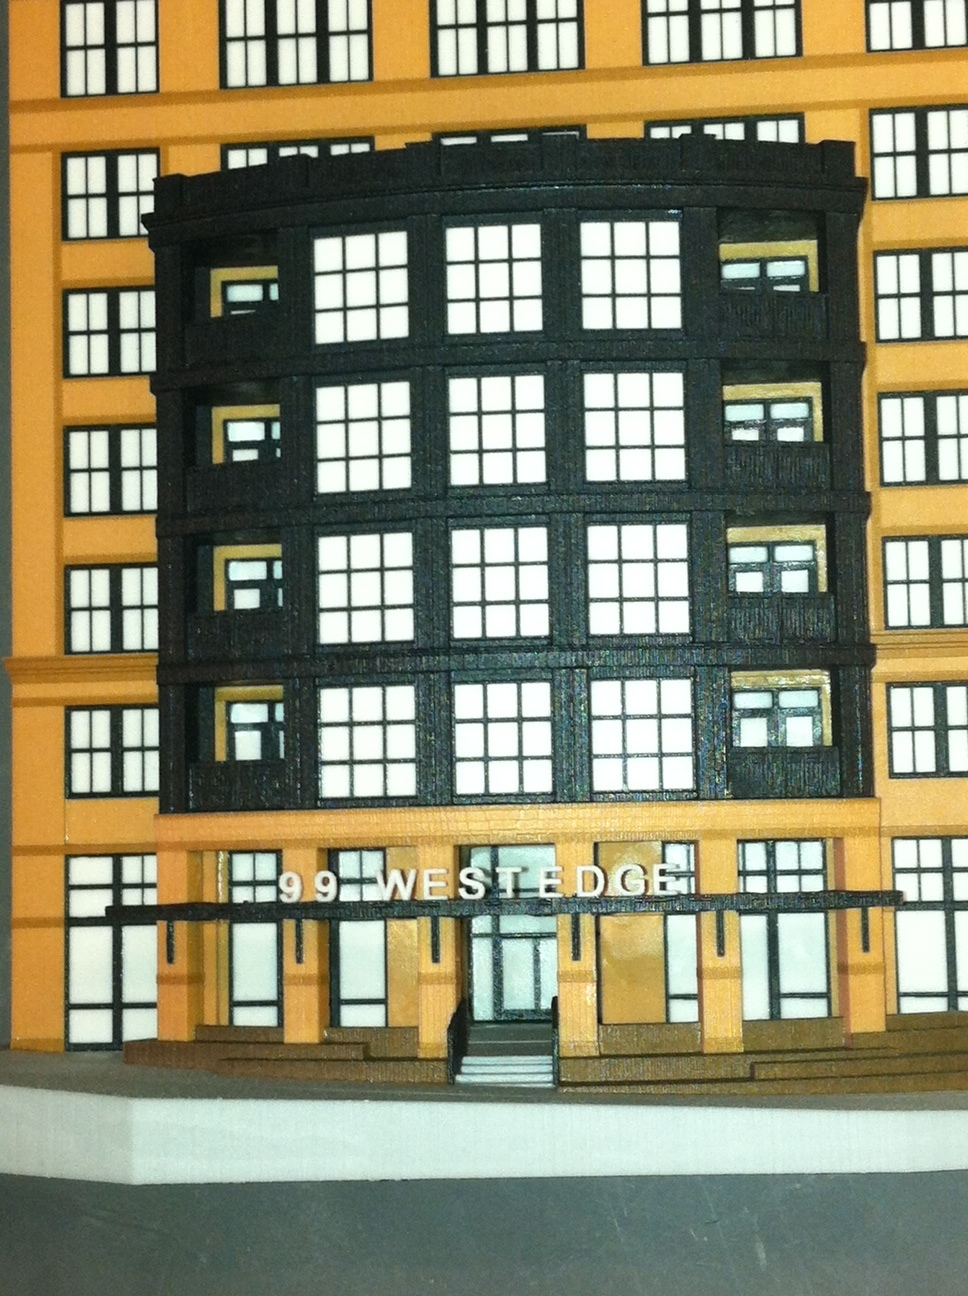 "99 West Edge Facade, 10"" x 8"" x 3.5"",  Courtesy of The Preston Partnership, printed using a 3D Systems Color Jet Printer"